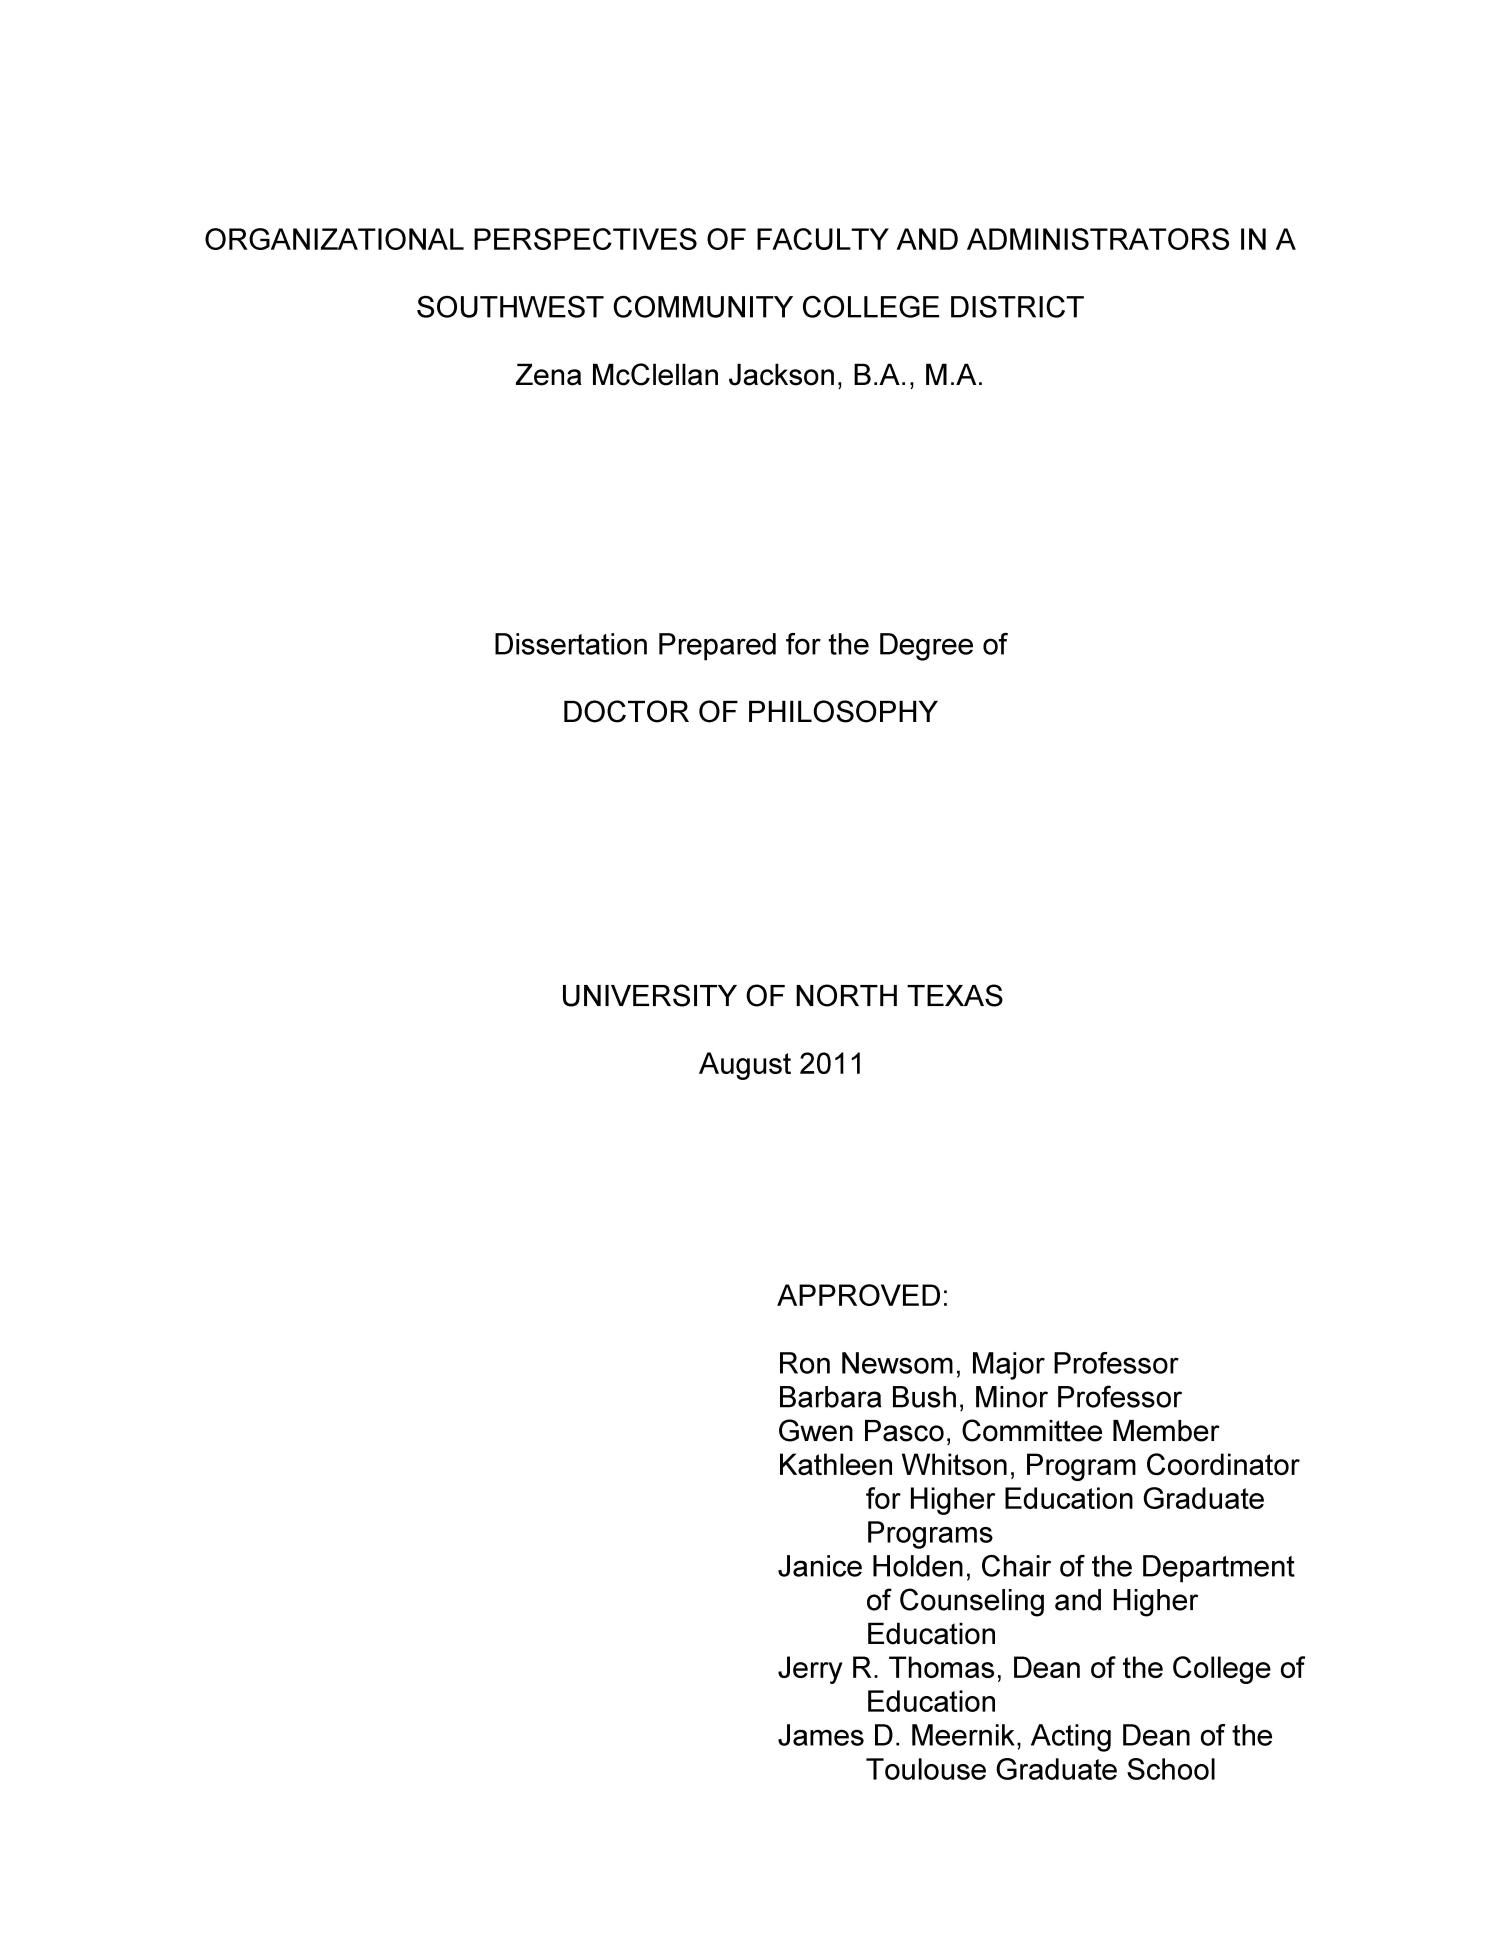 Organizational Perspectives of Faculty and Administrators in a Southwest Community College District                                                                                                      Title Page